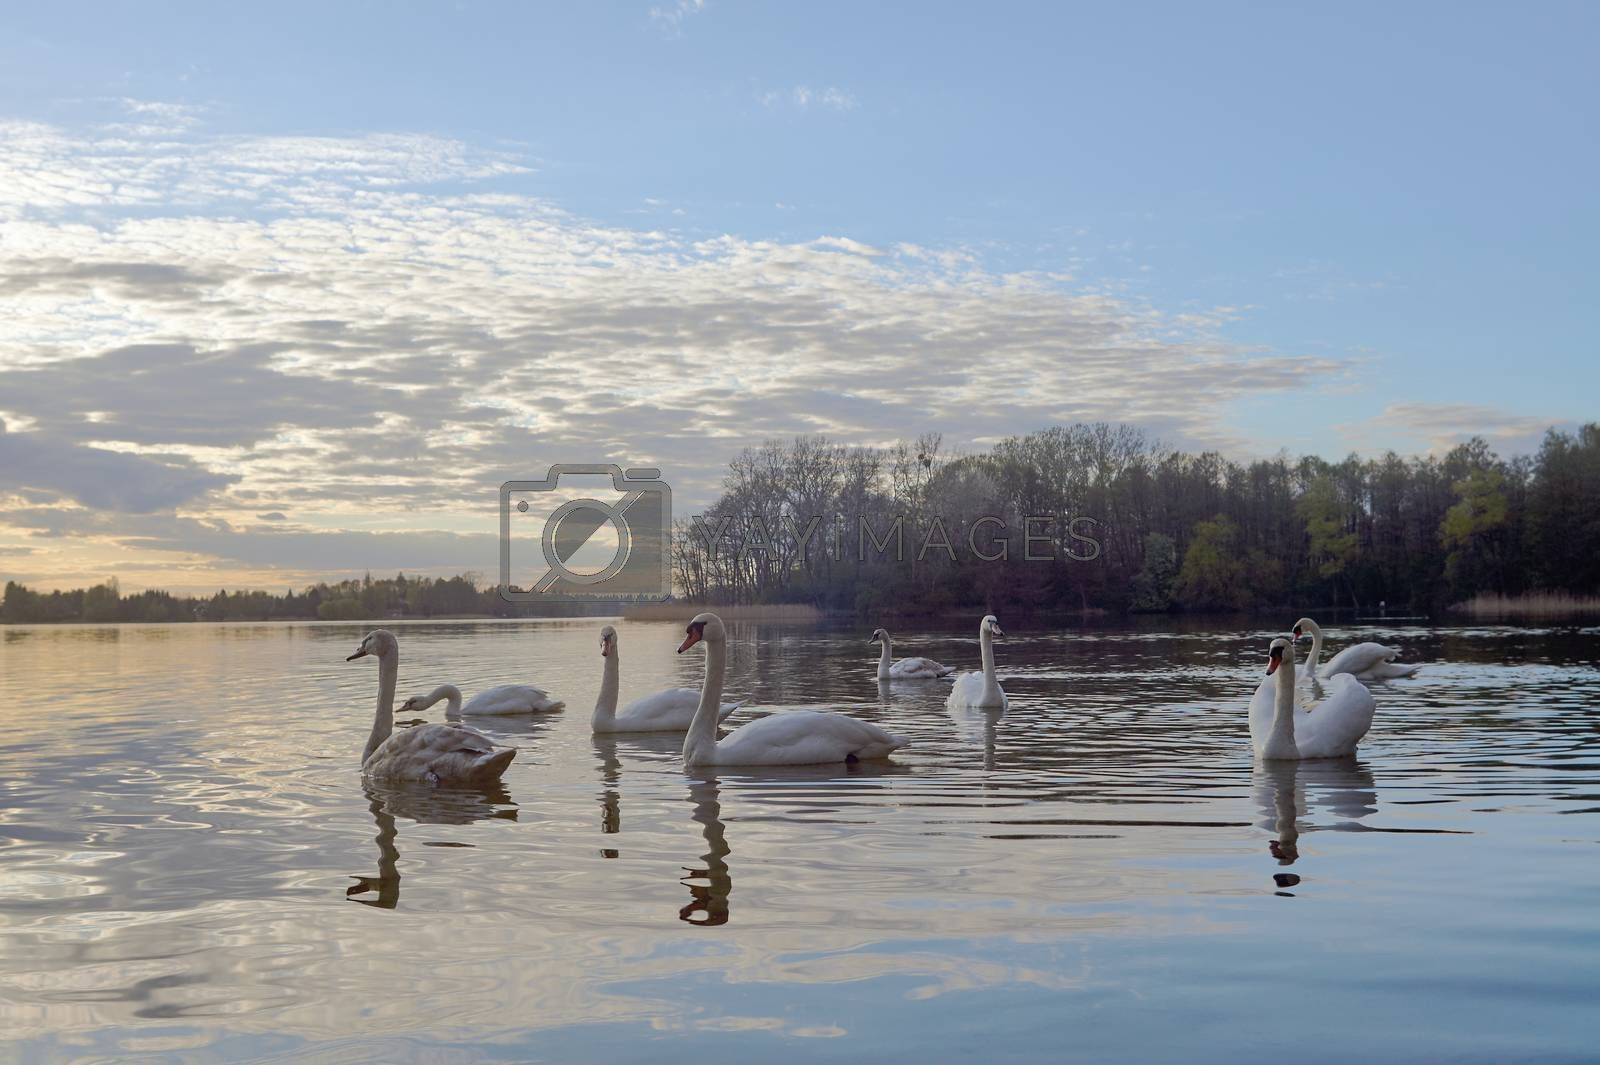 Lake and swans at sunset by gkordus